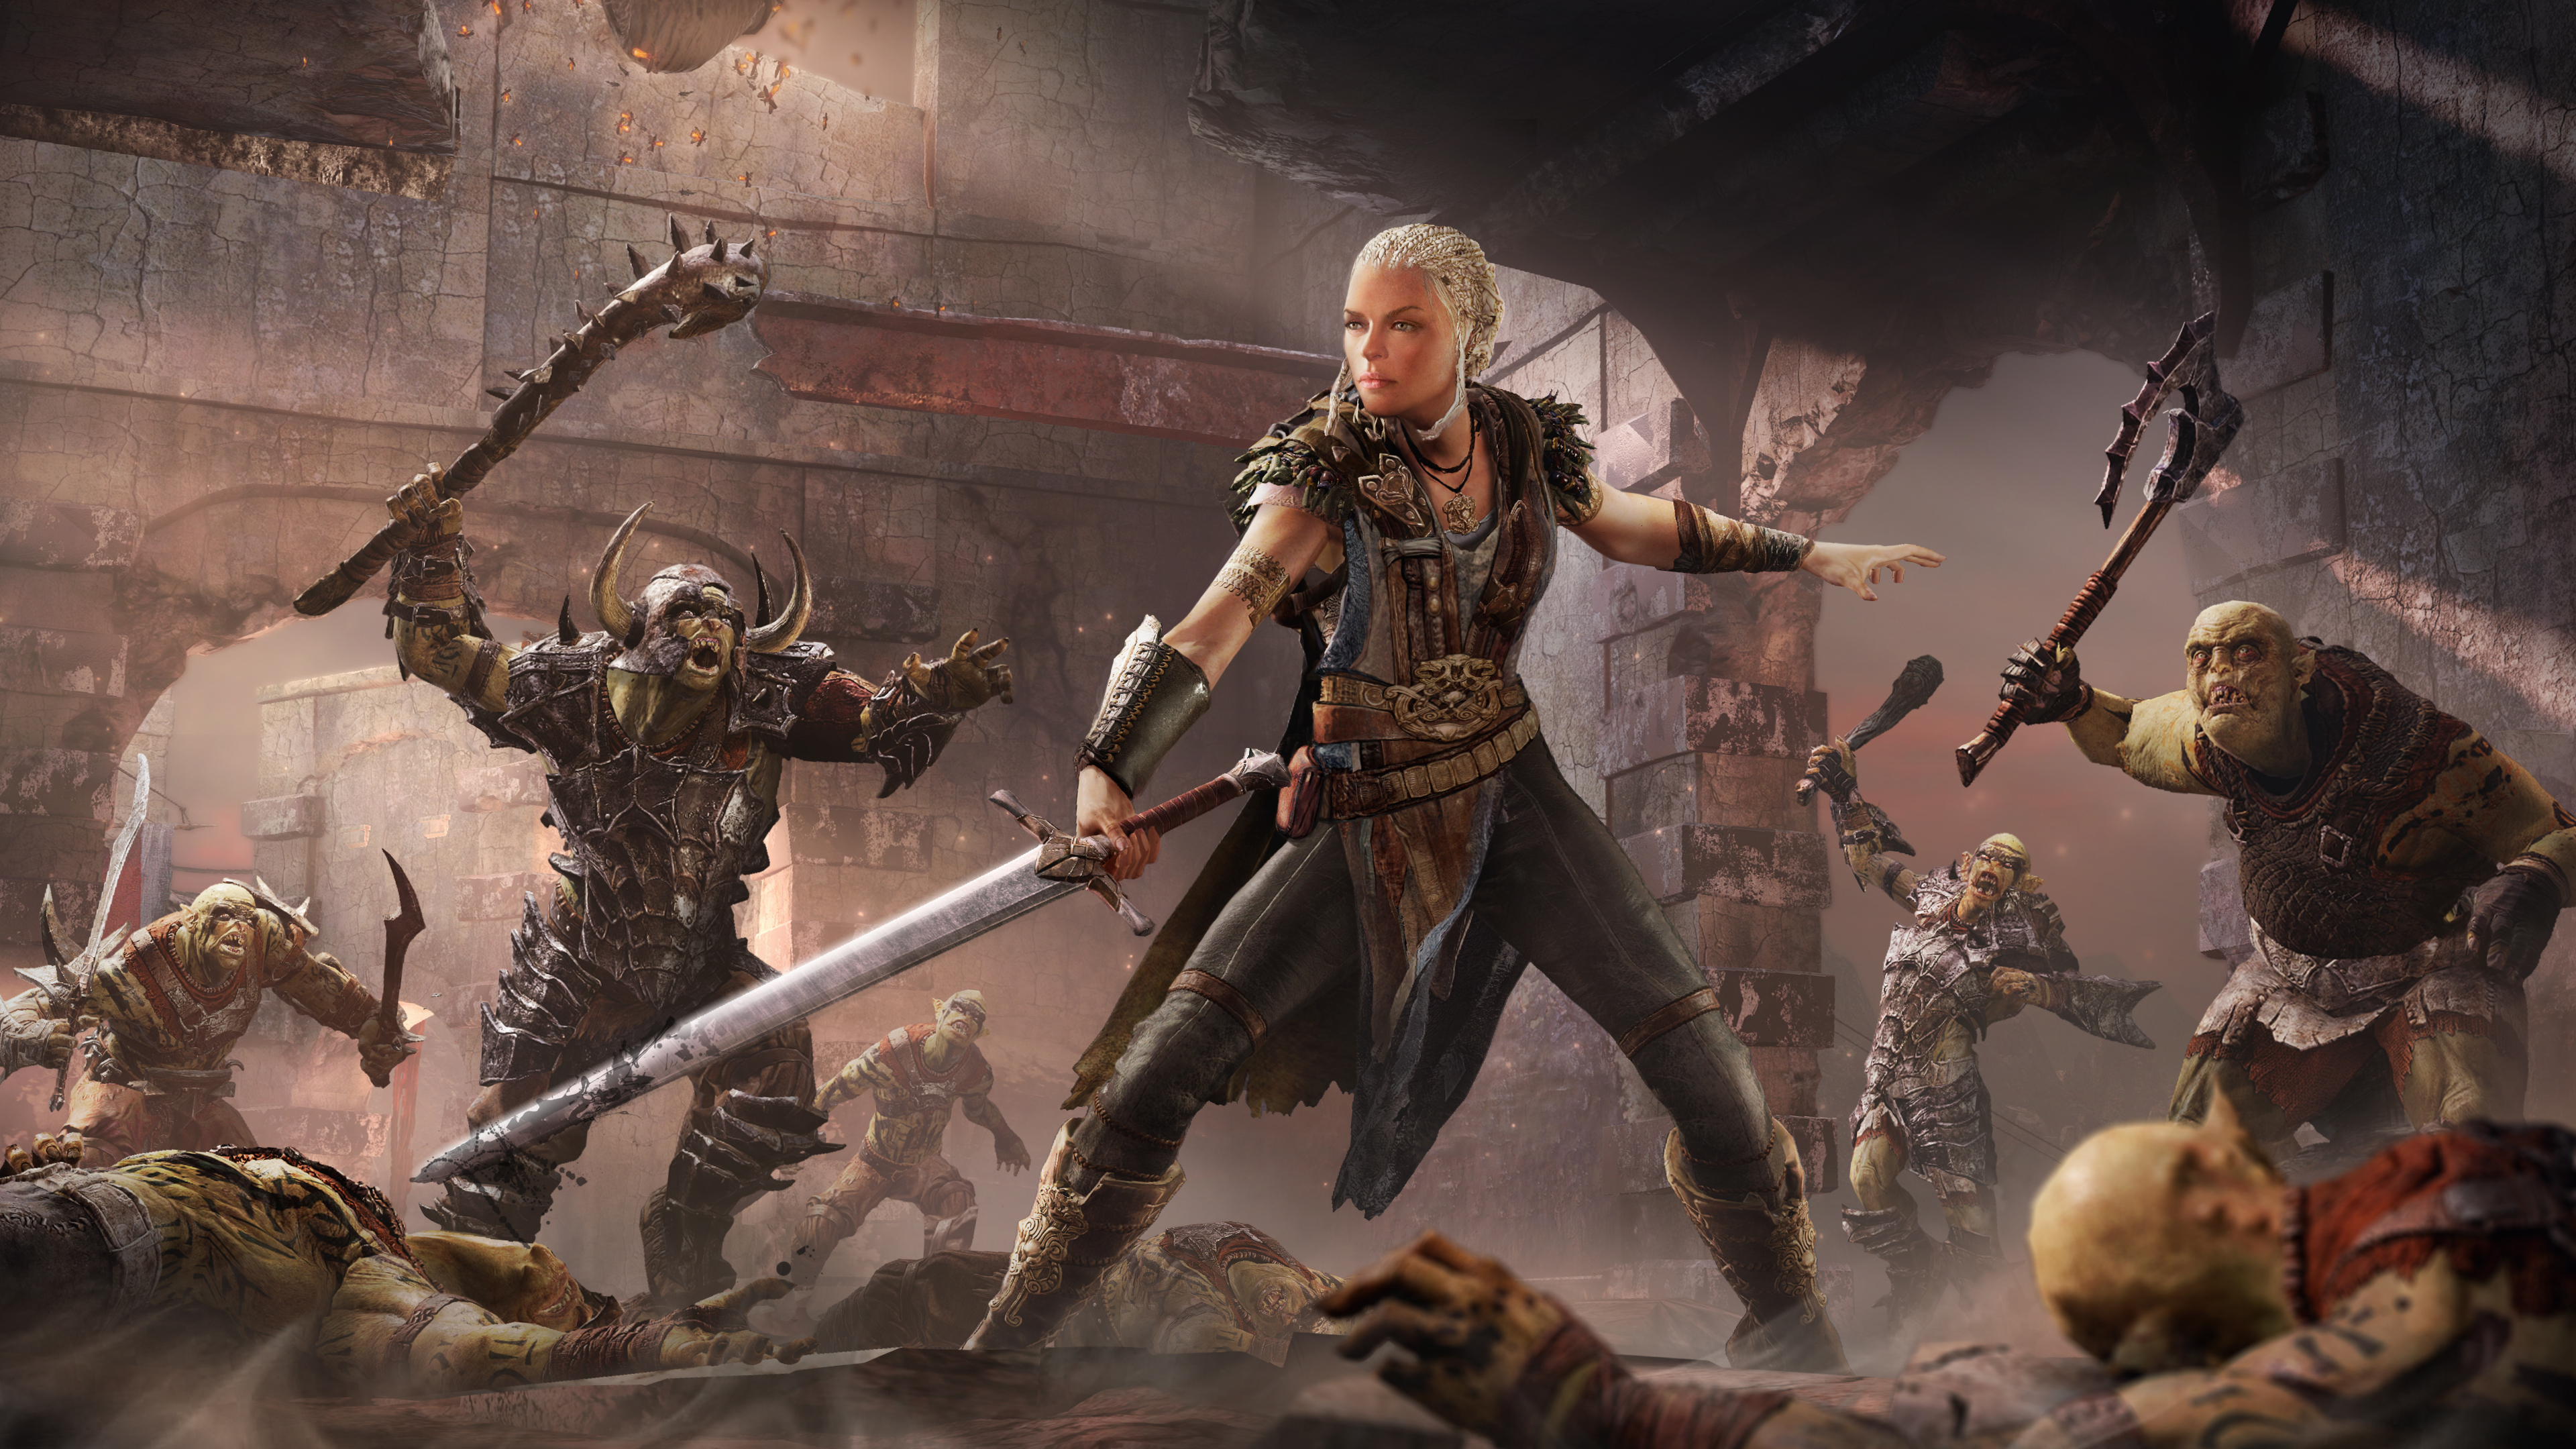 Play Middle-earth: Shadow of Mordor as a woman